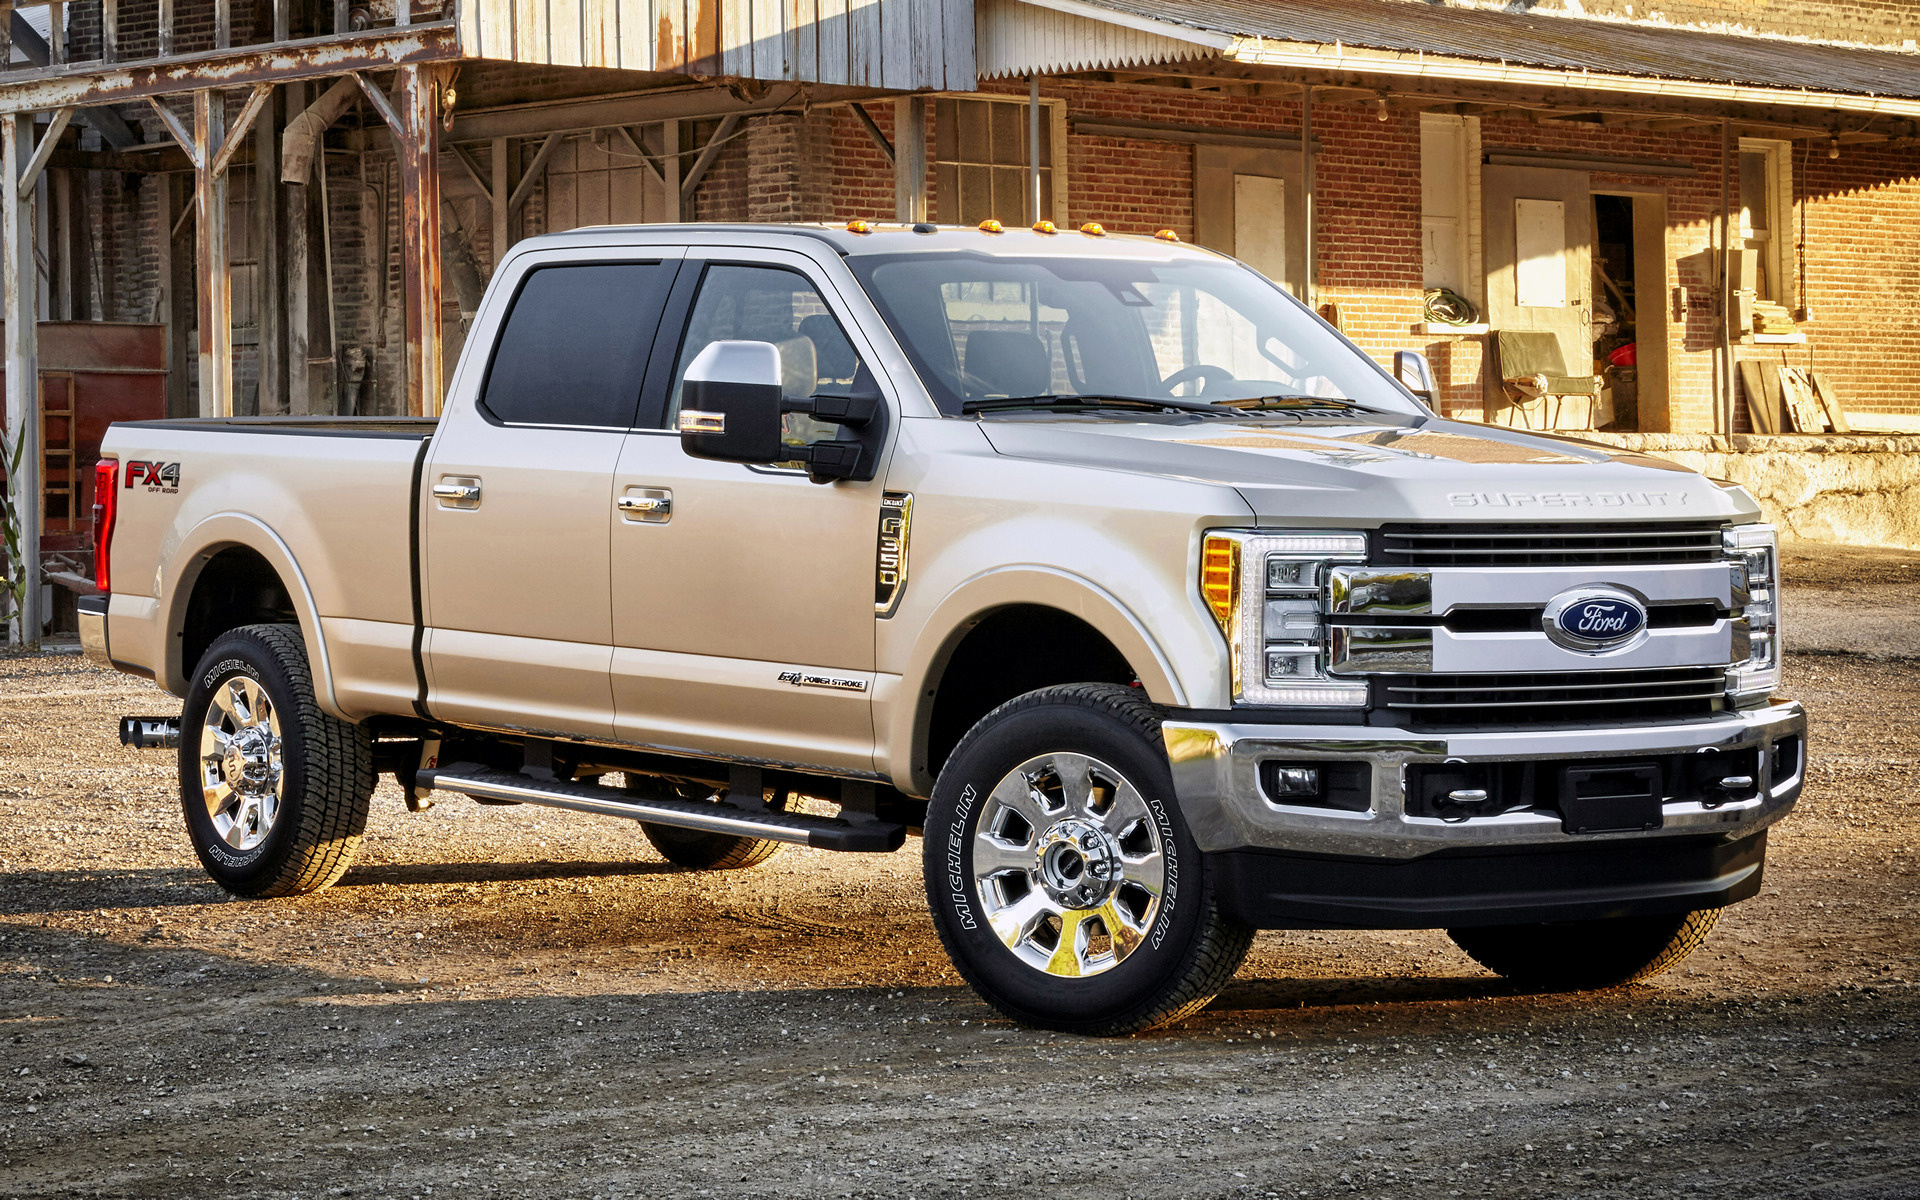 Ford F-350 King Ranch FX4 Crew Cab (2017) Wallpapers and ...